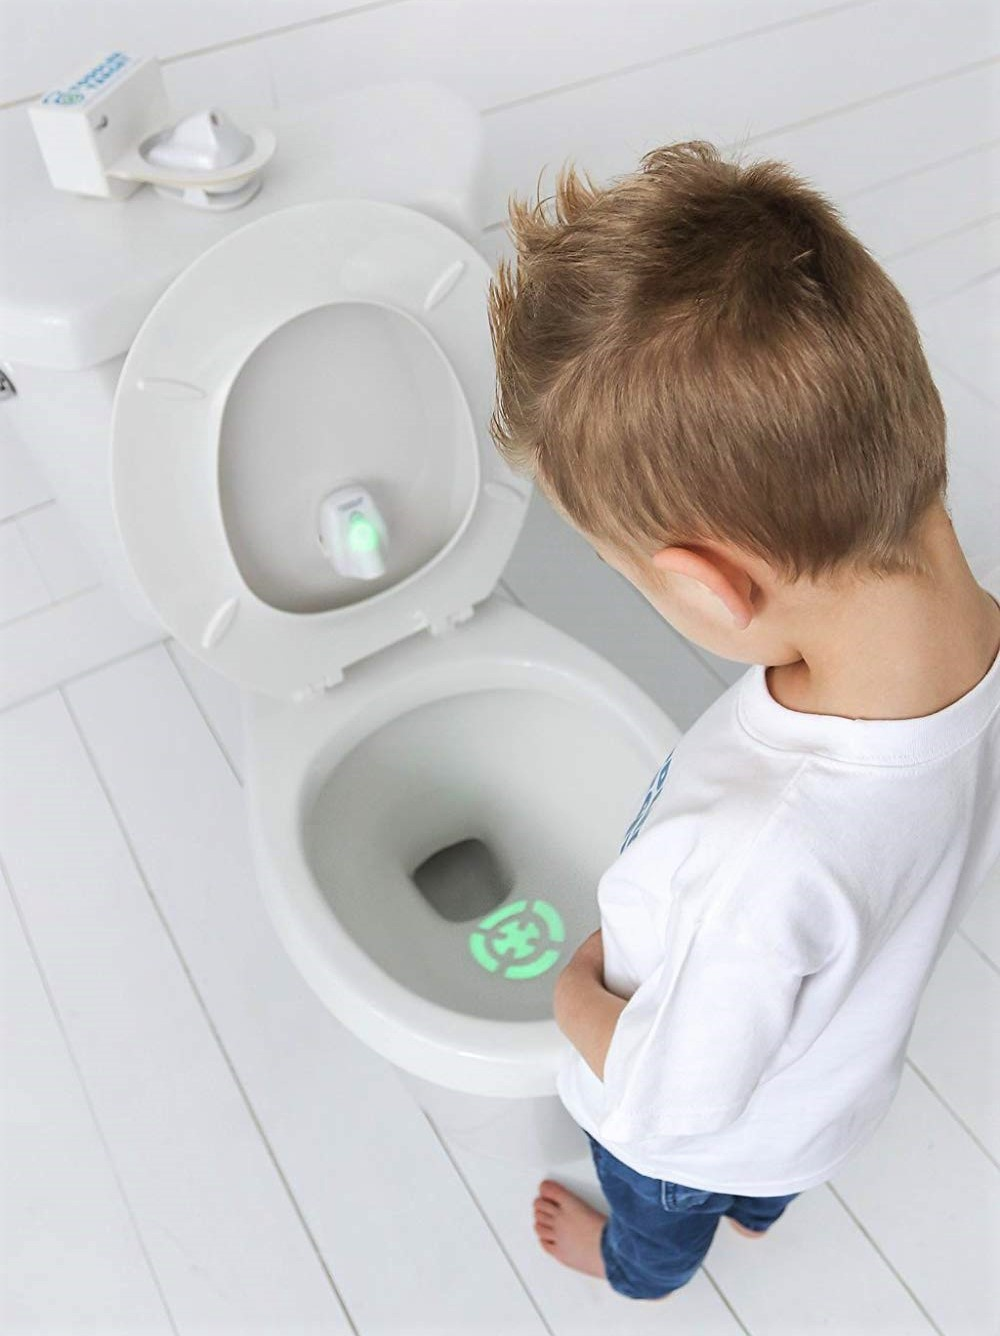 Fantastic Introducing The Adult Size Toilet Parents Short Links Chair Design For Home Short Linksinfo